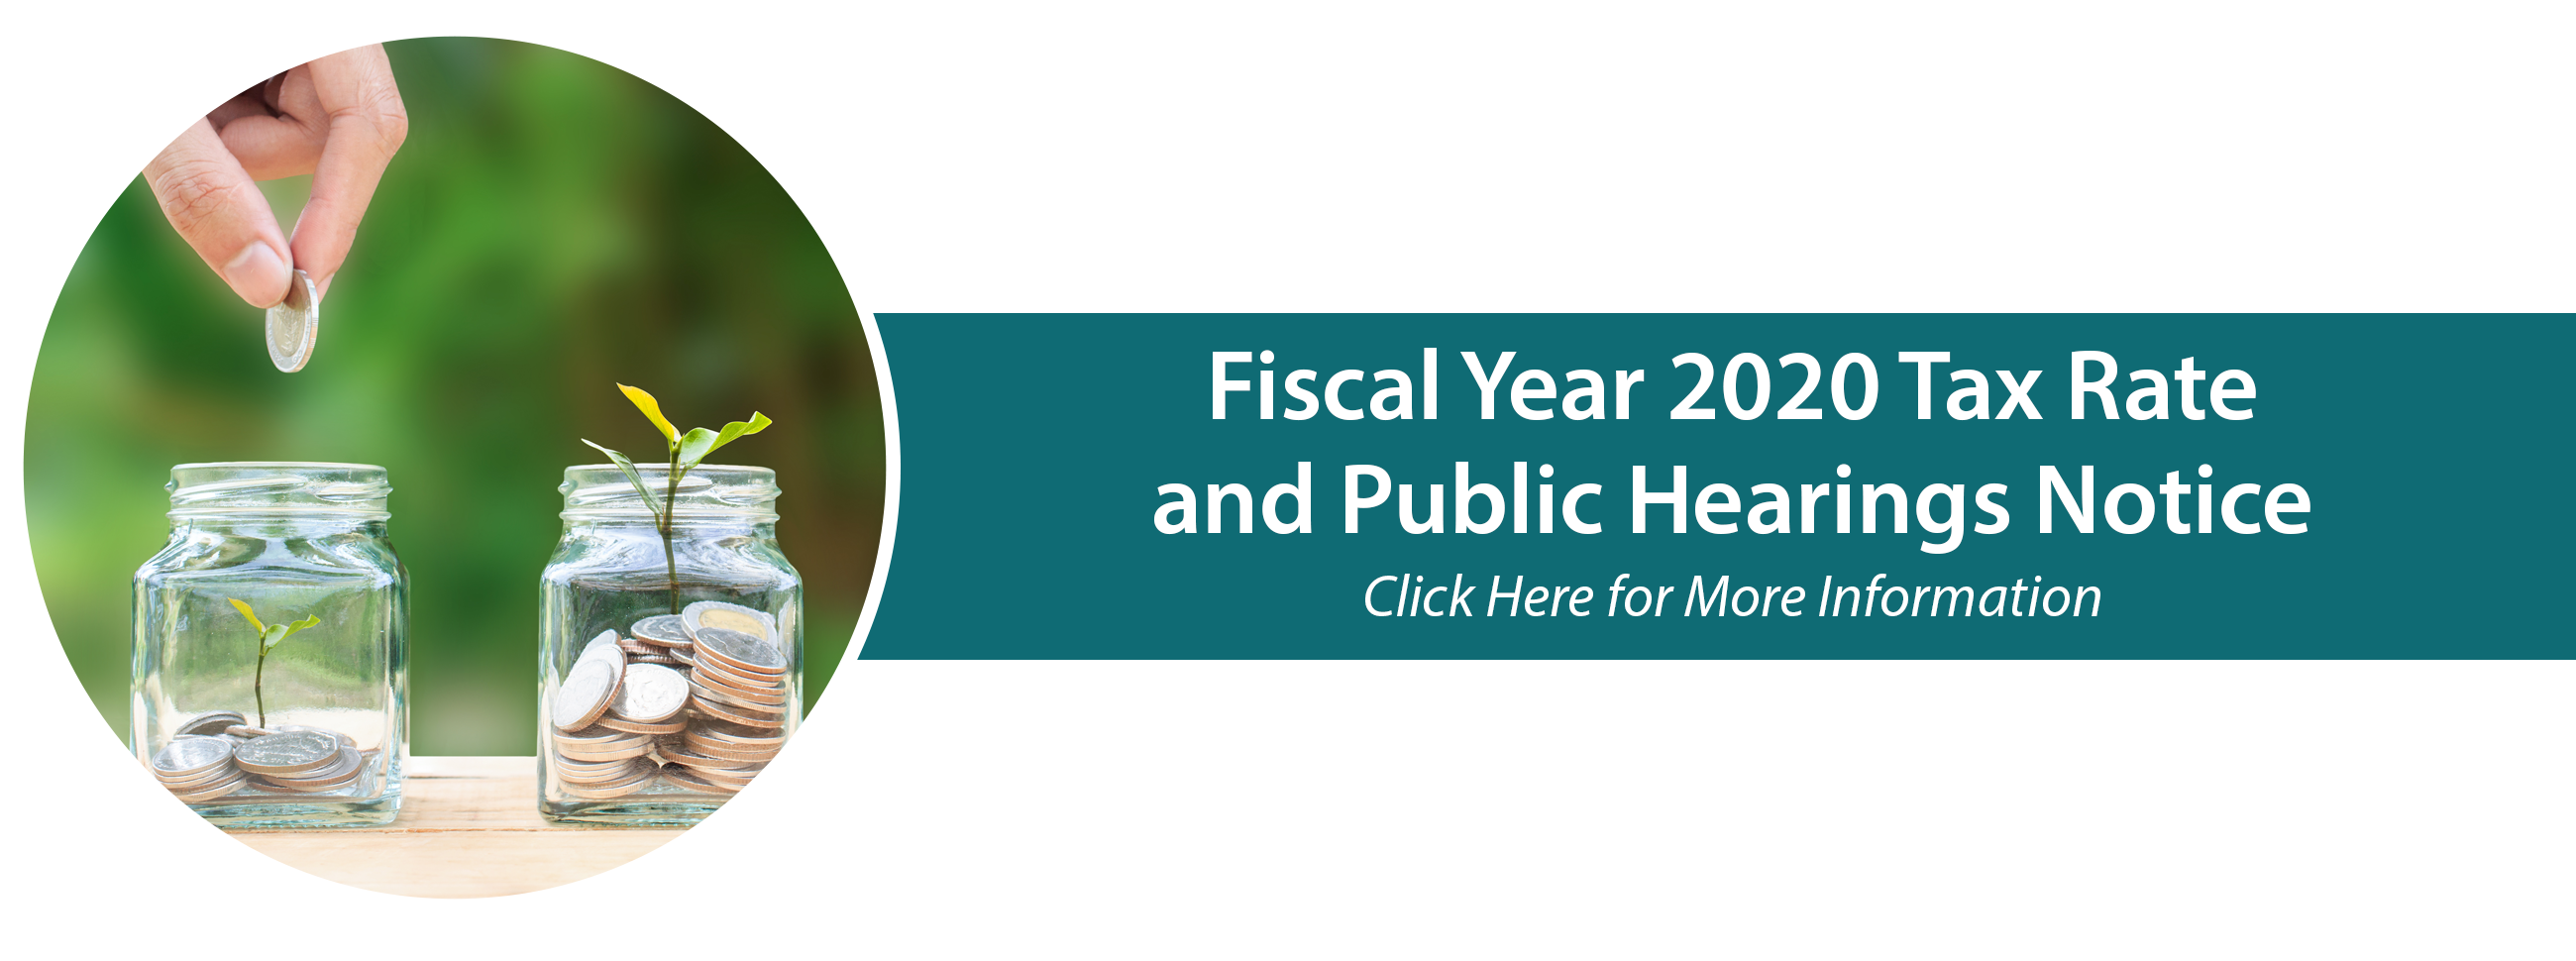 Fiscal Year 2020 Tax Rate and Public Hearings Notice, Click here for more info